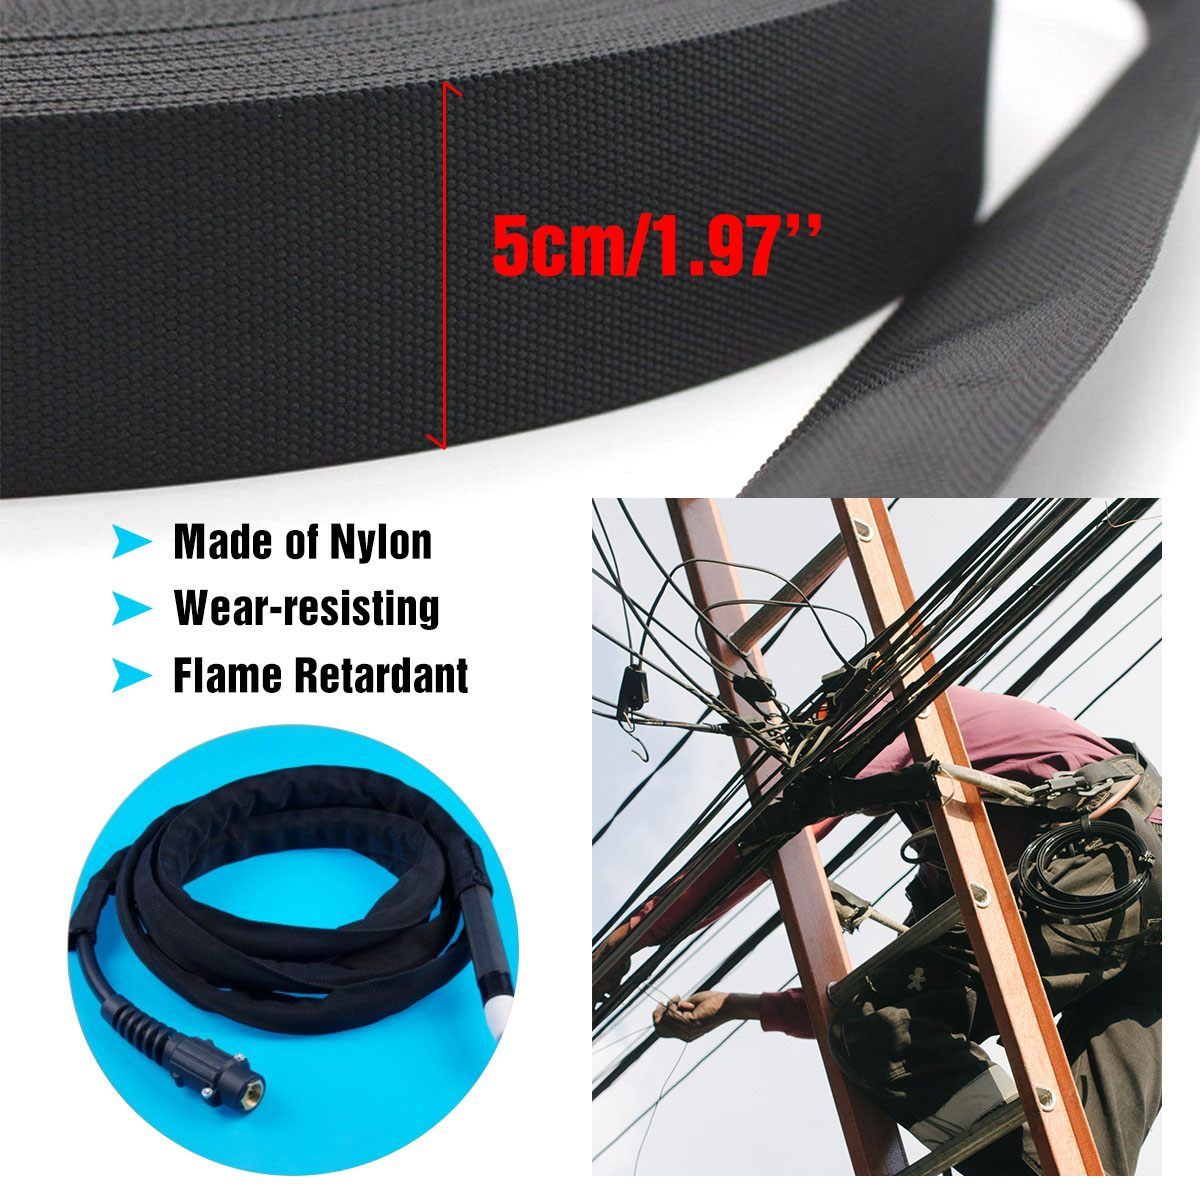 25/' Nylon Protective Gear Sleeve Sheath Cable Cover Welding Torch Hydraulic